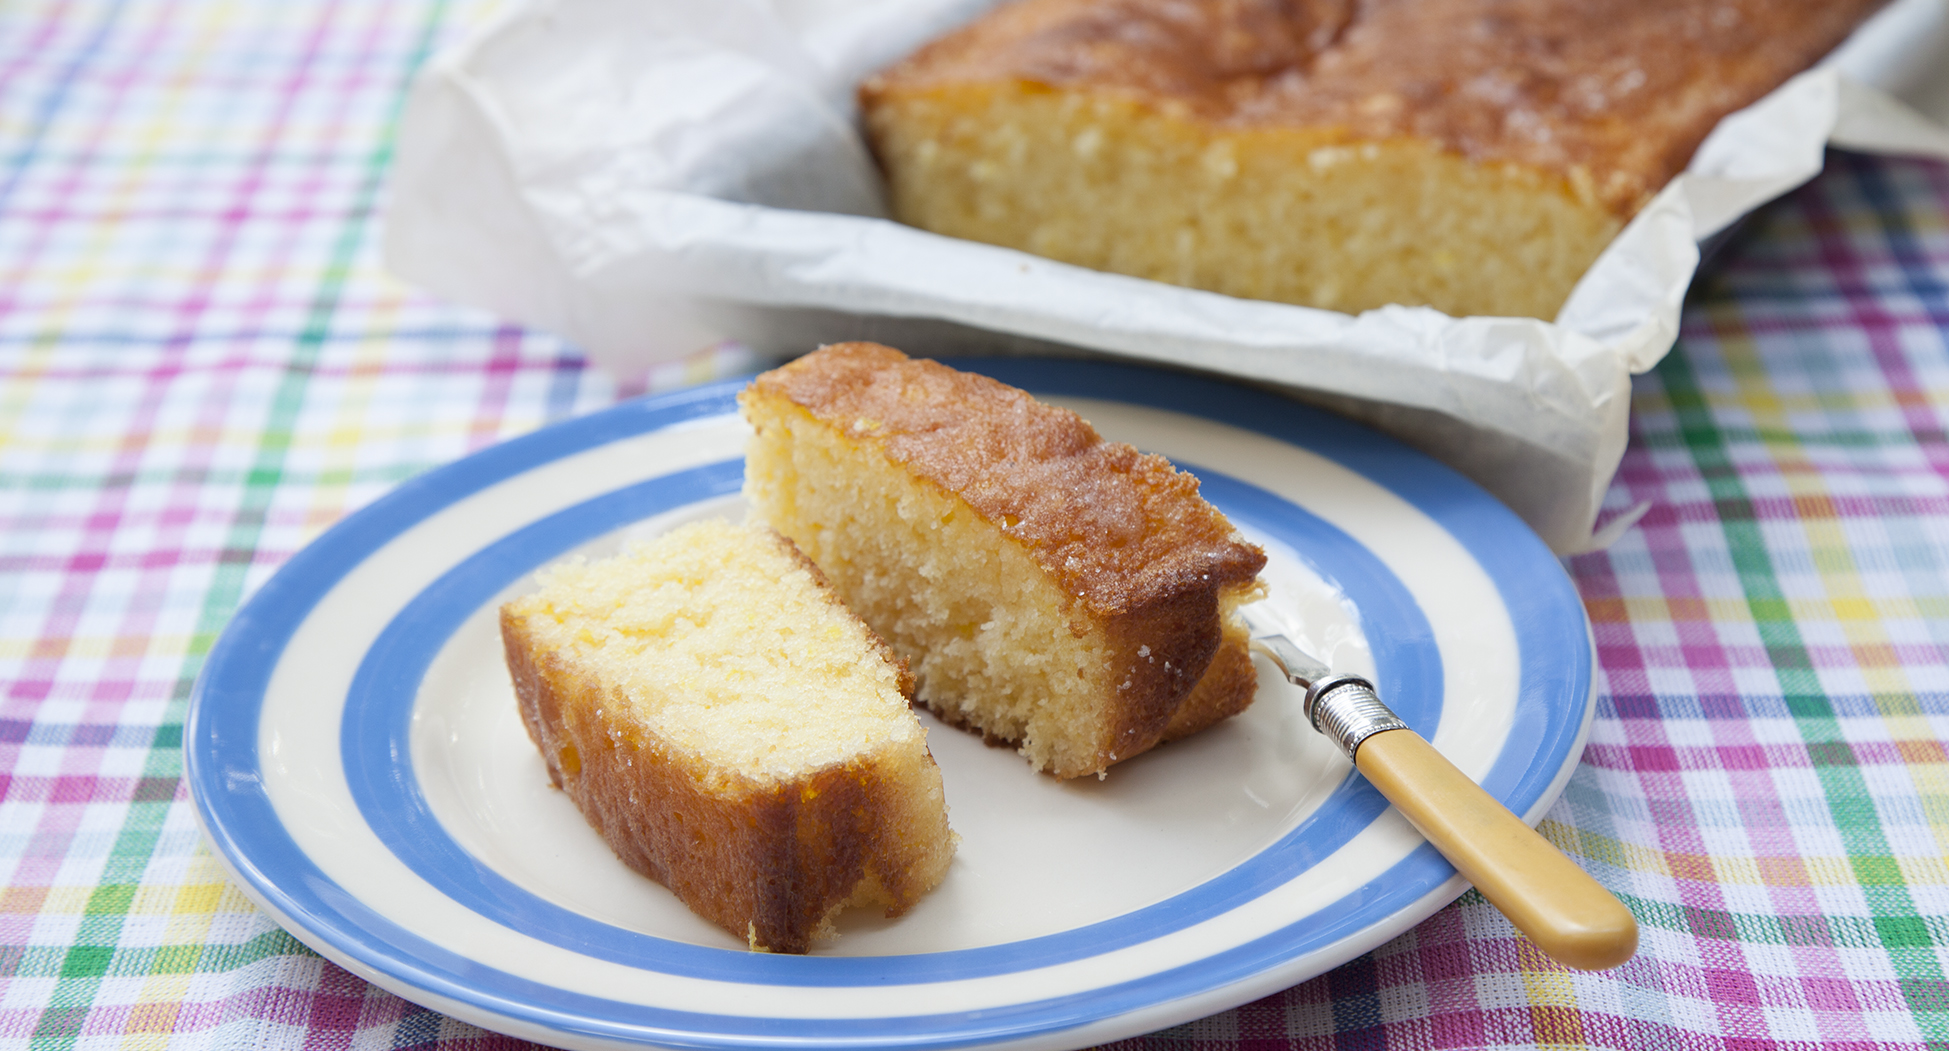 Lemon drizzle 203 page 118 straighten cloth.jpg